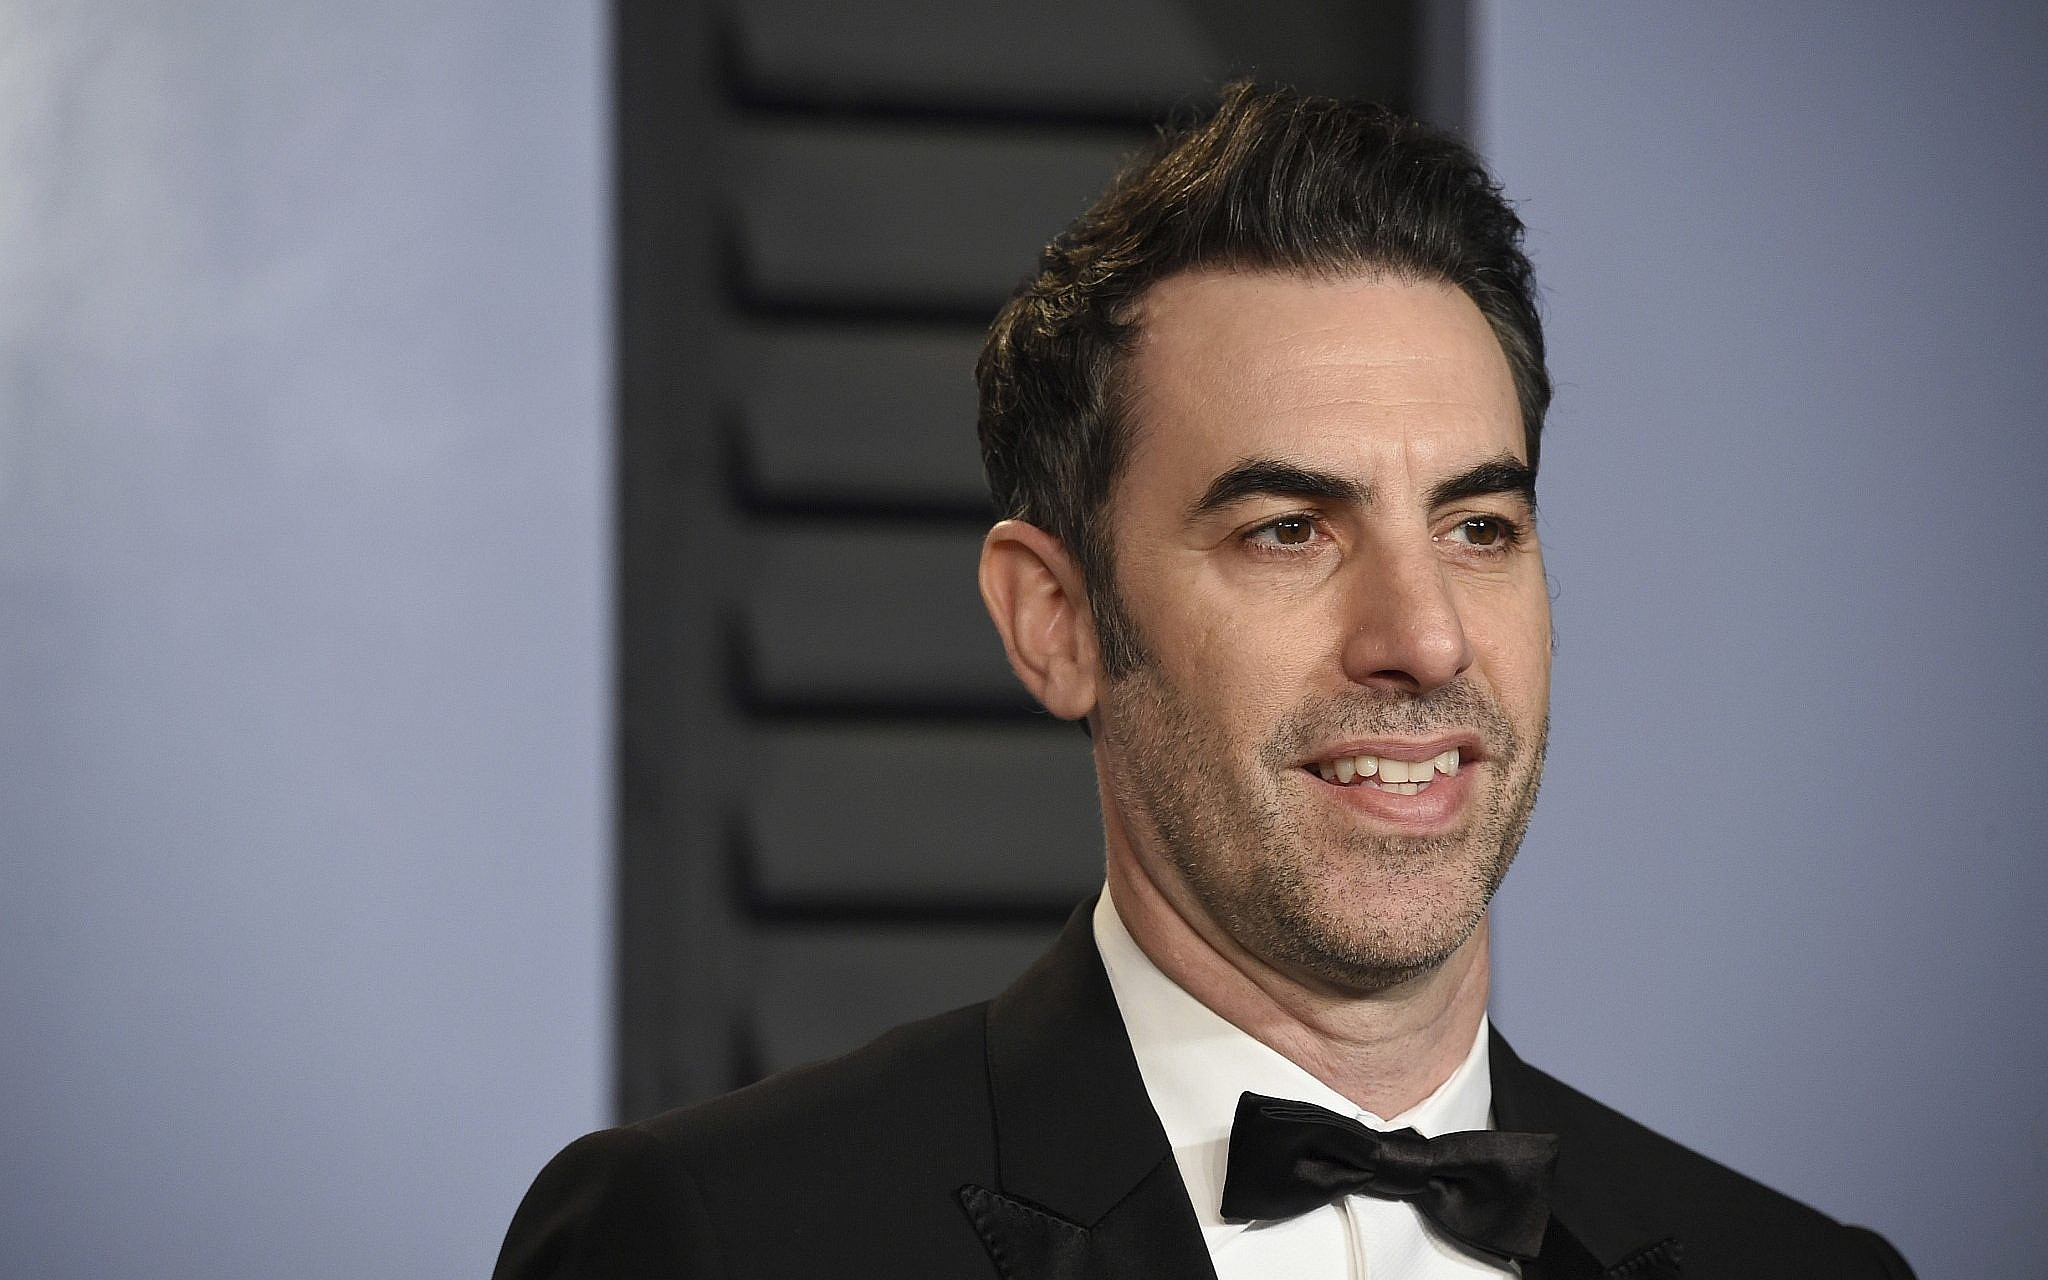 Sacha Baron Cohen Series 'Who Is America? To Premiere Sunday On Showtime